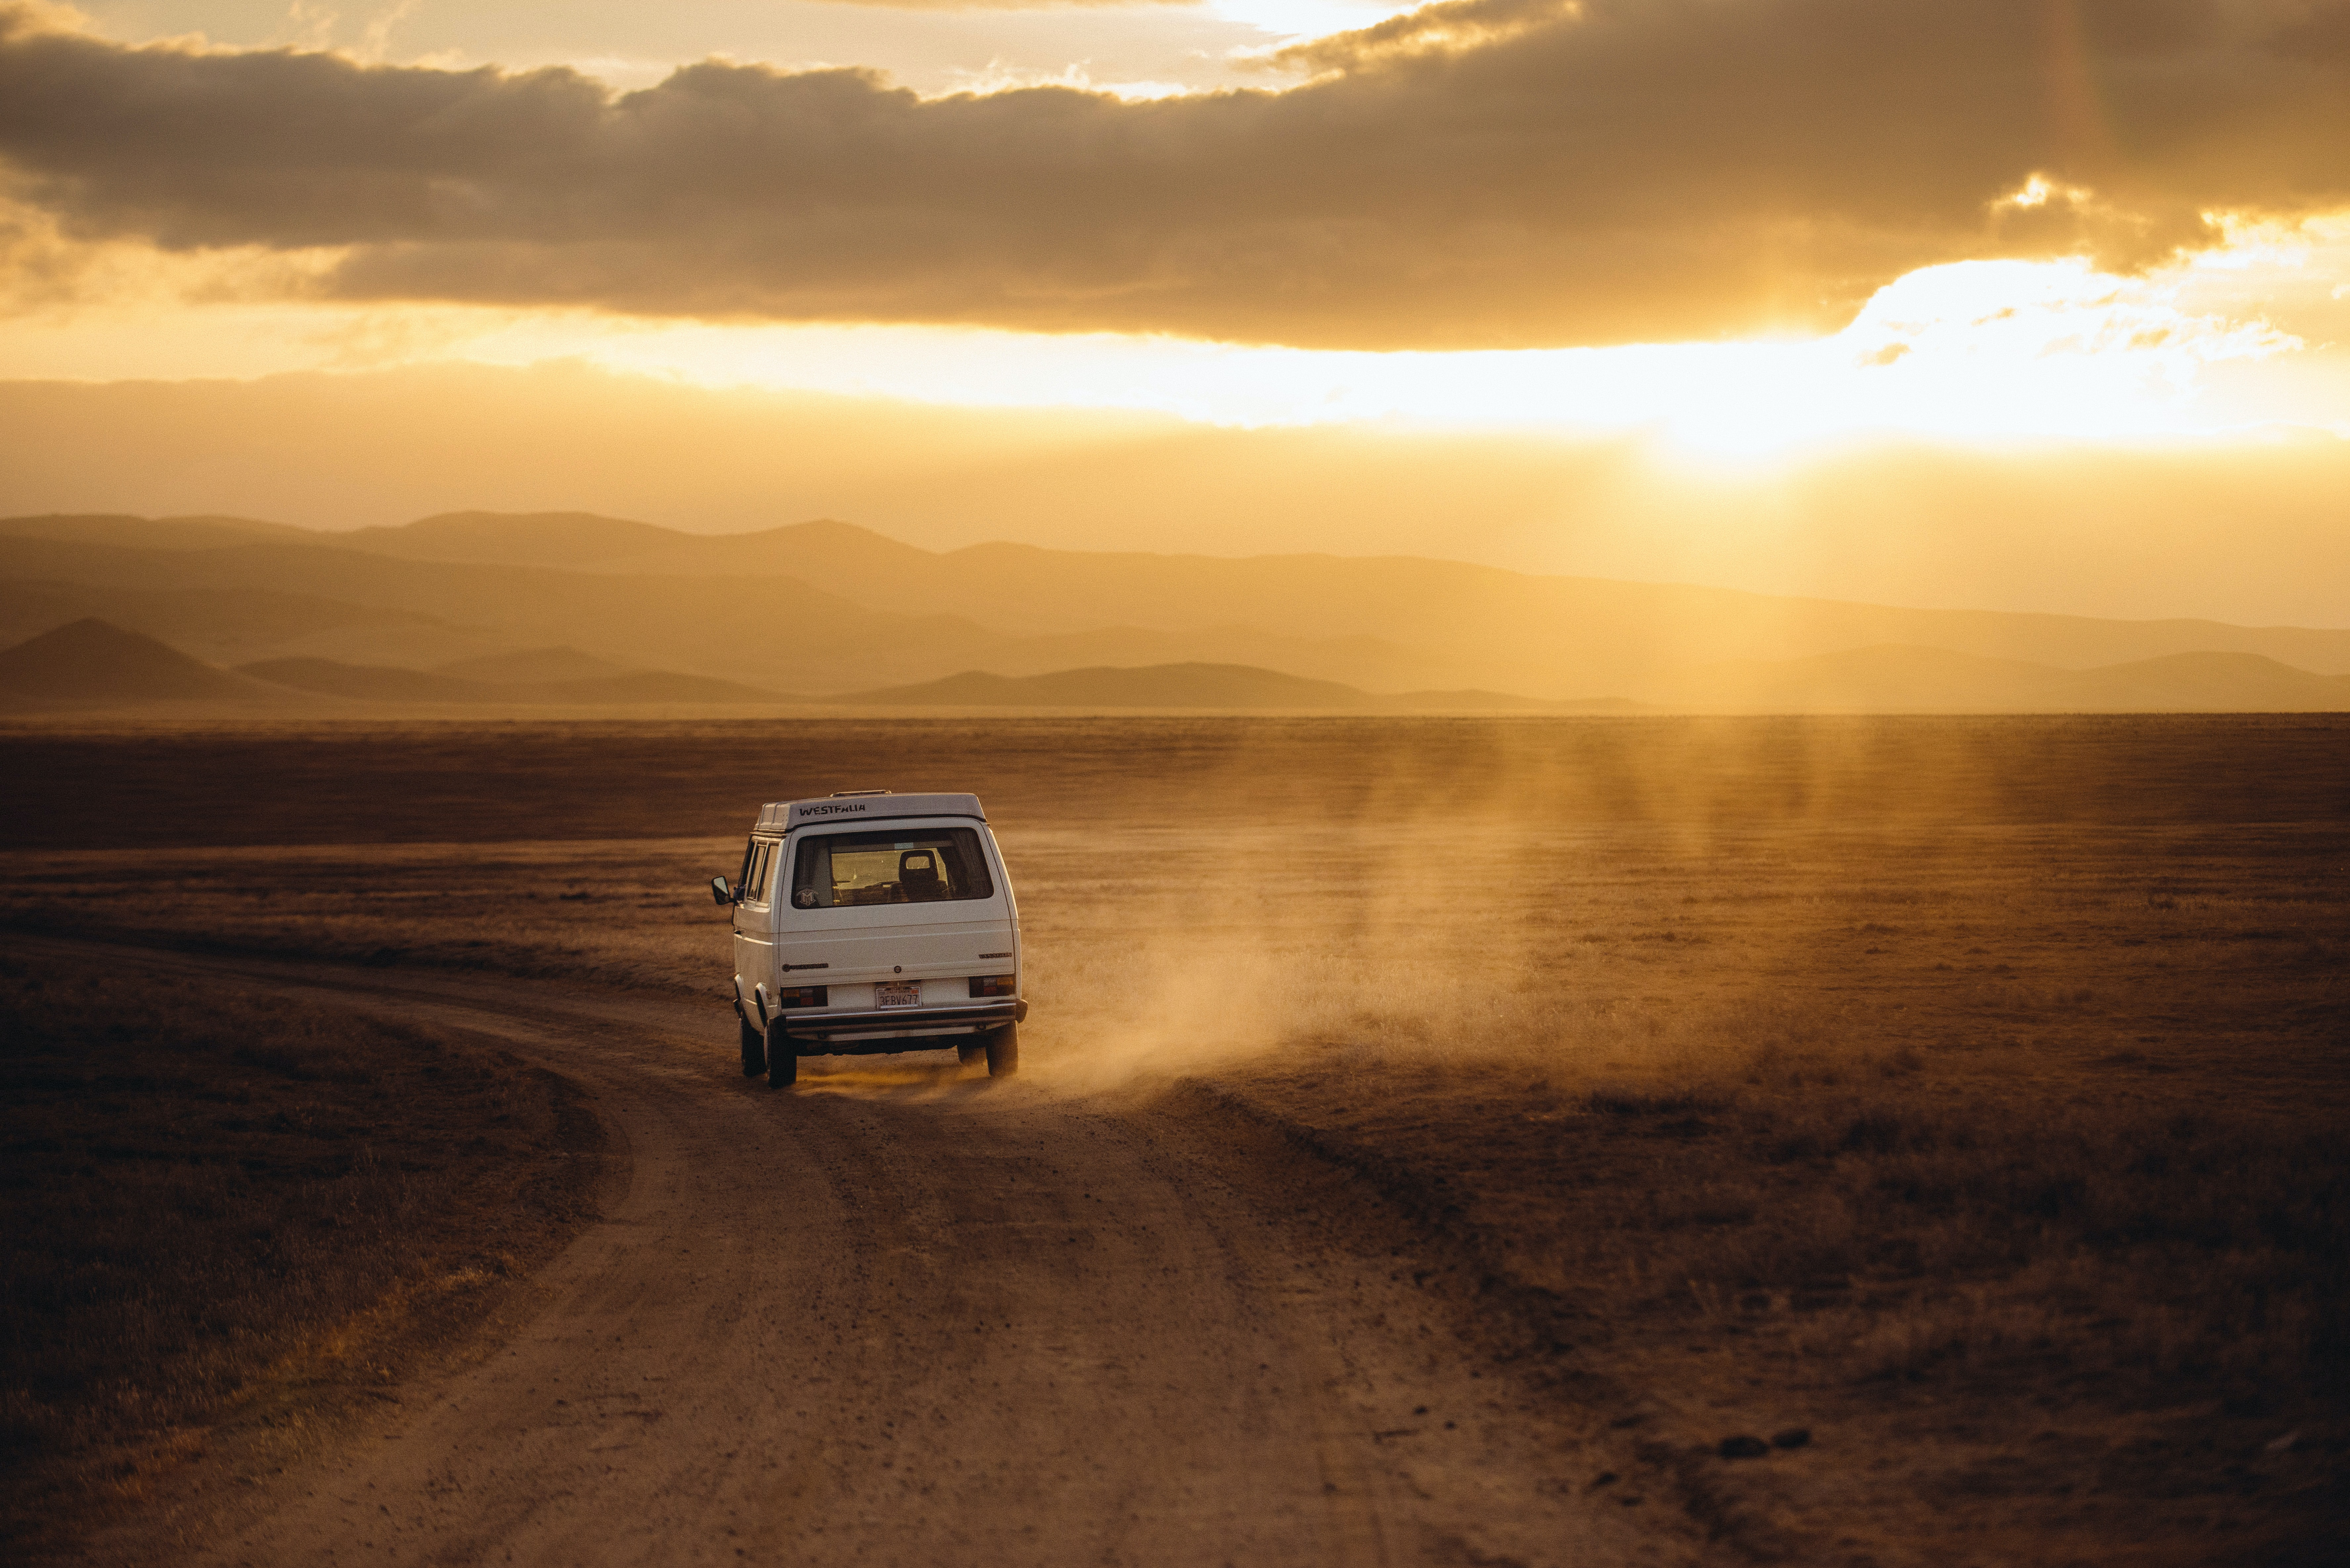 A white car driving along a curve in a dusty road in the outback